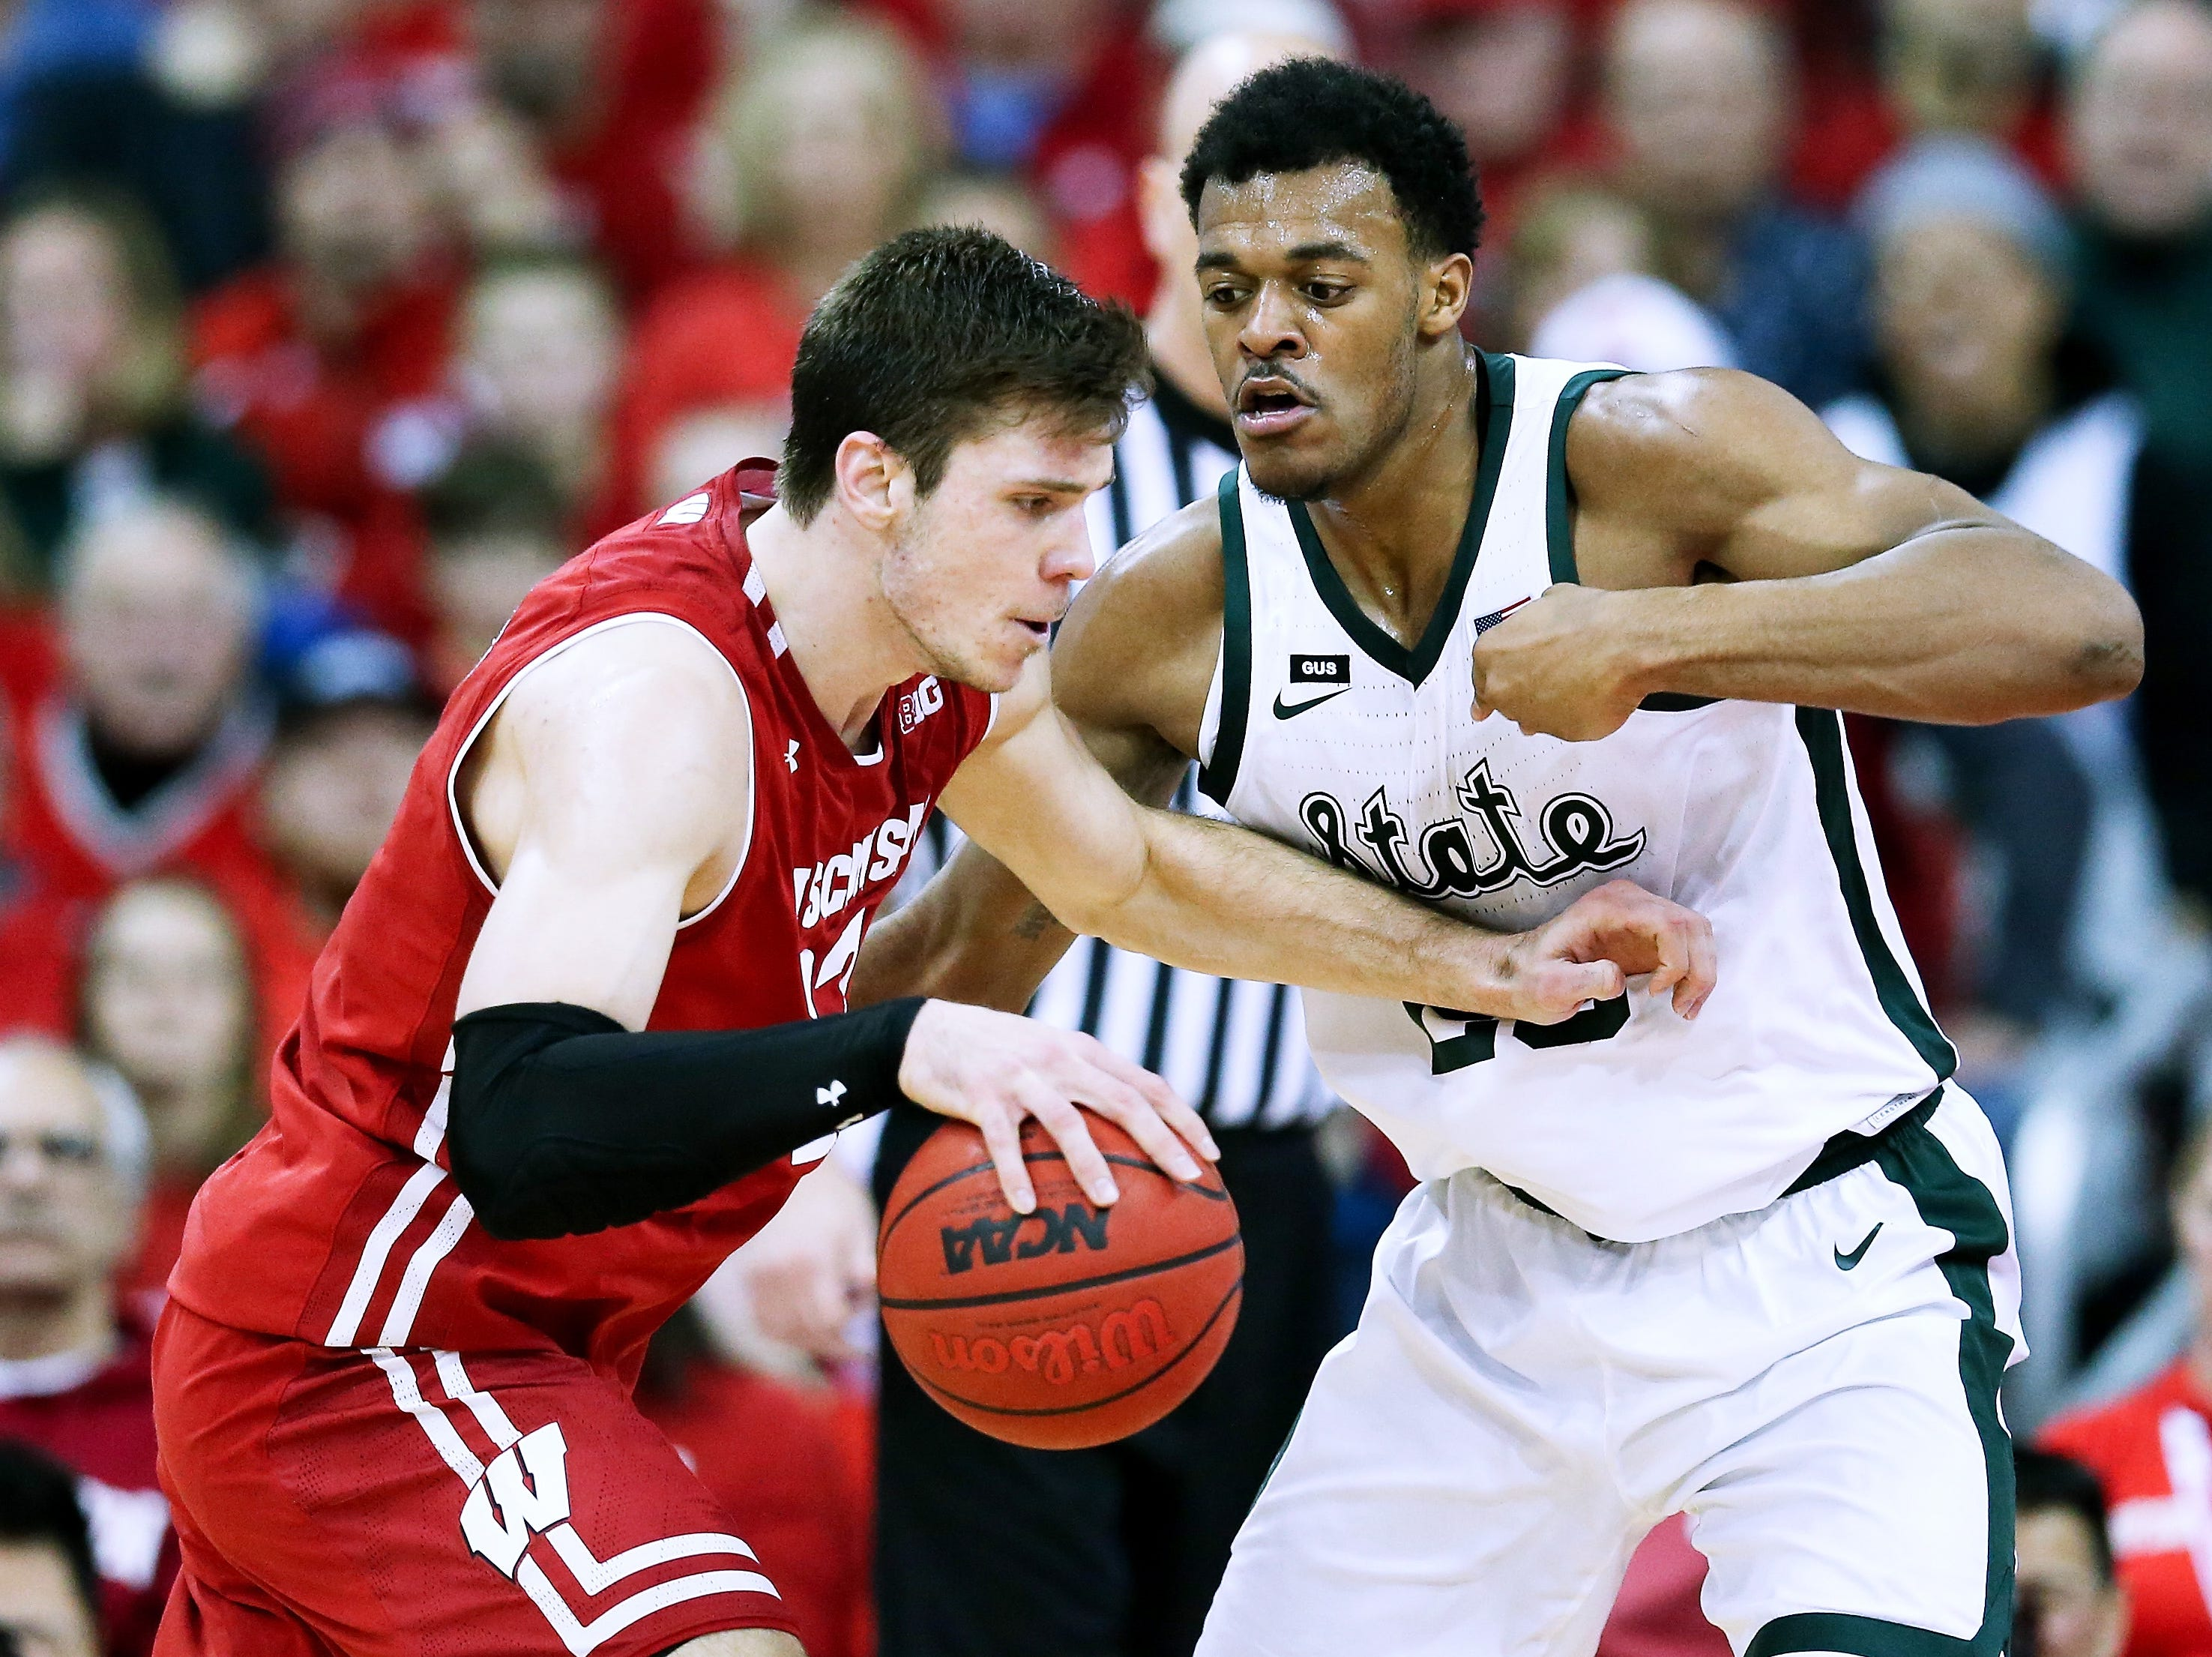 Ethan Happ #22 of the Wisconsin Badgers dribbles the ball while being guarded by Xavier Tillman #23 of the Michigan State Spartans in the second half at the Kohl Center on February 12, 2019 in Madison, Wisconsin.